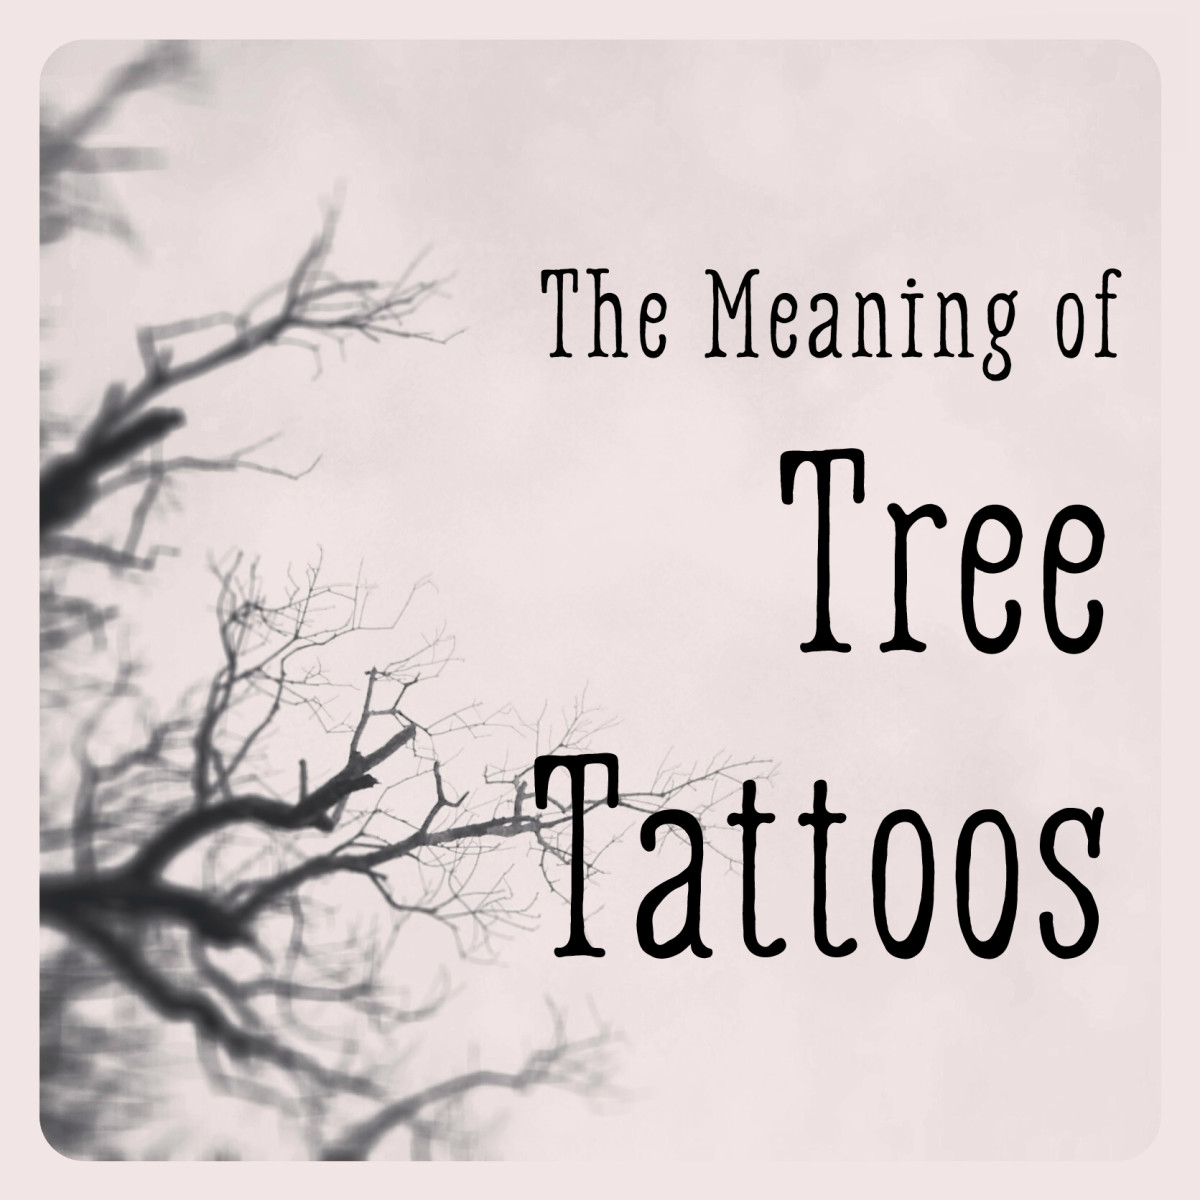 Feet Tattoo Meaning The Meaning of Tree Tattoos